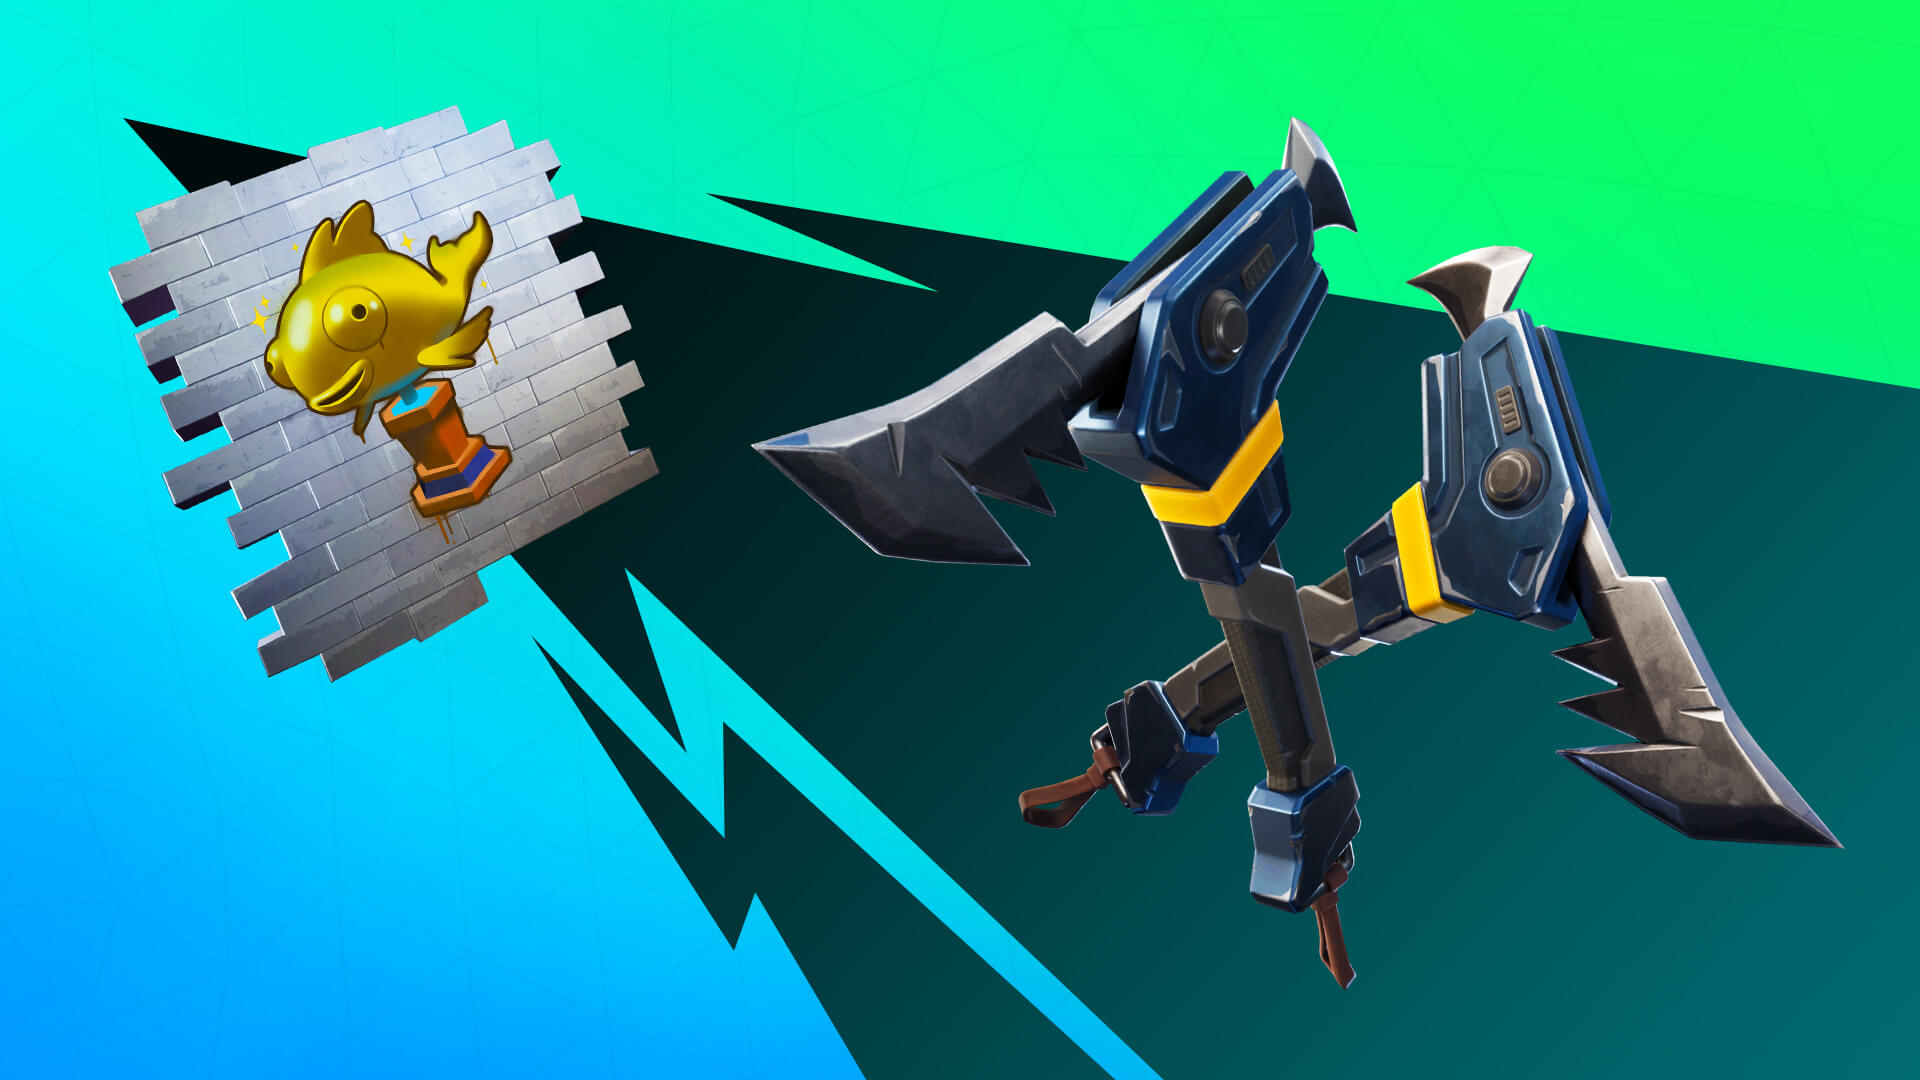 Fortnite Spray Codes Oce Play With Your Favorite Fortnite Creator In Creative Mayhem